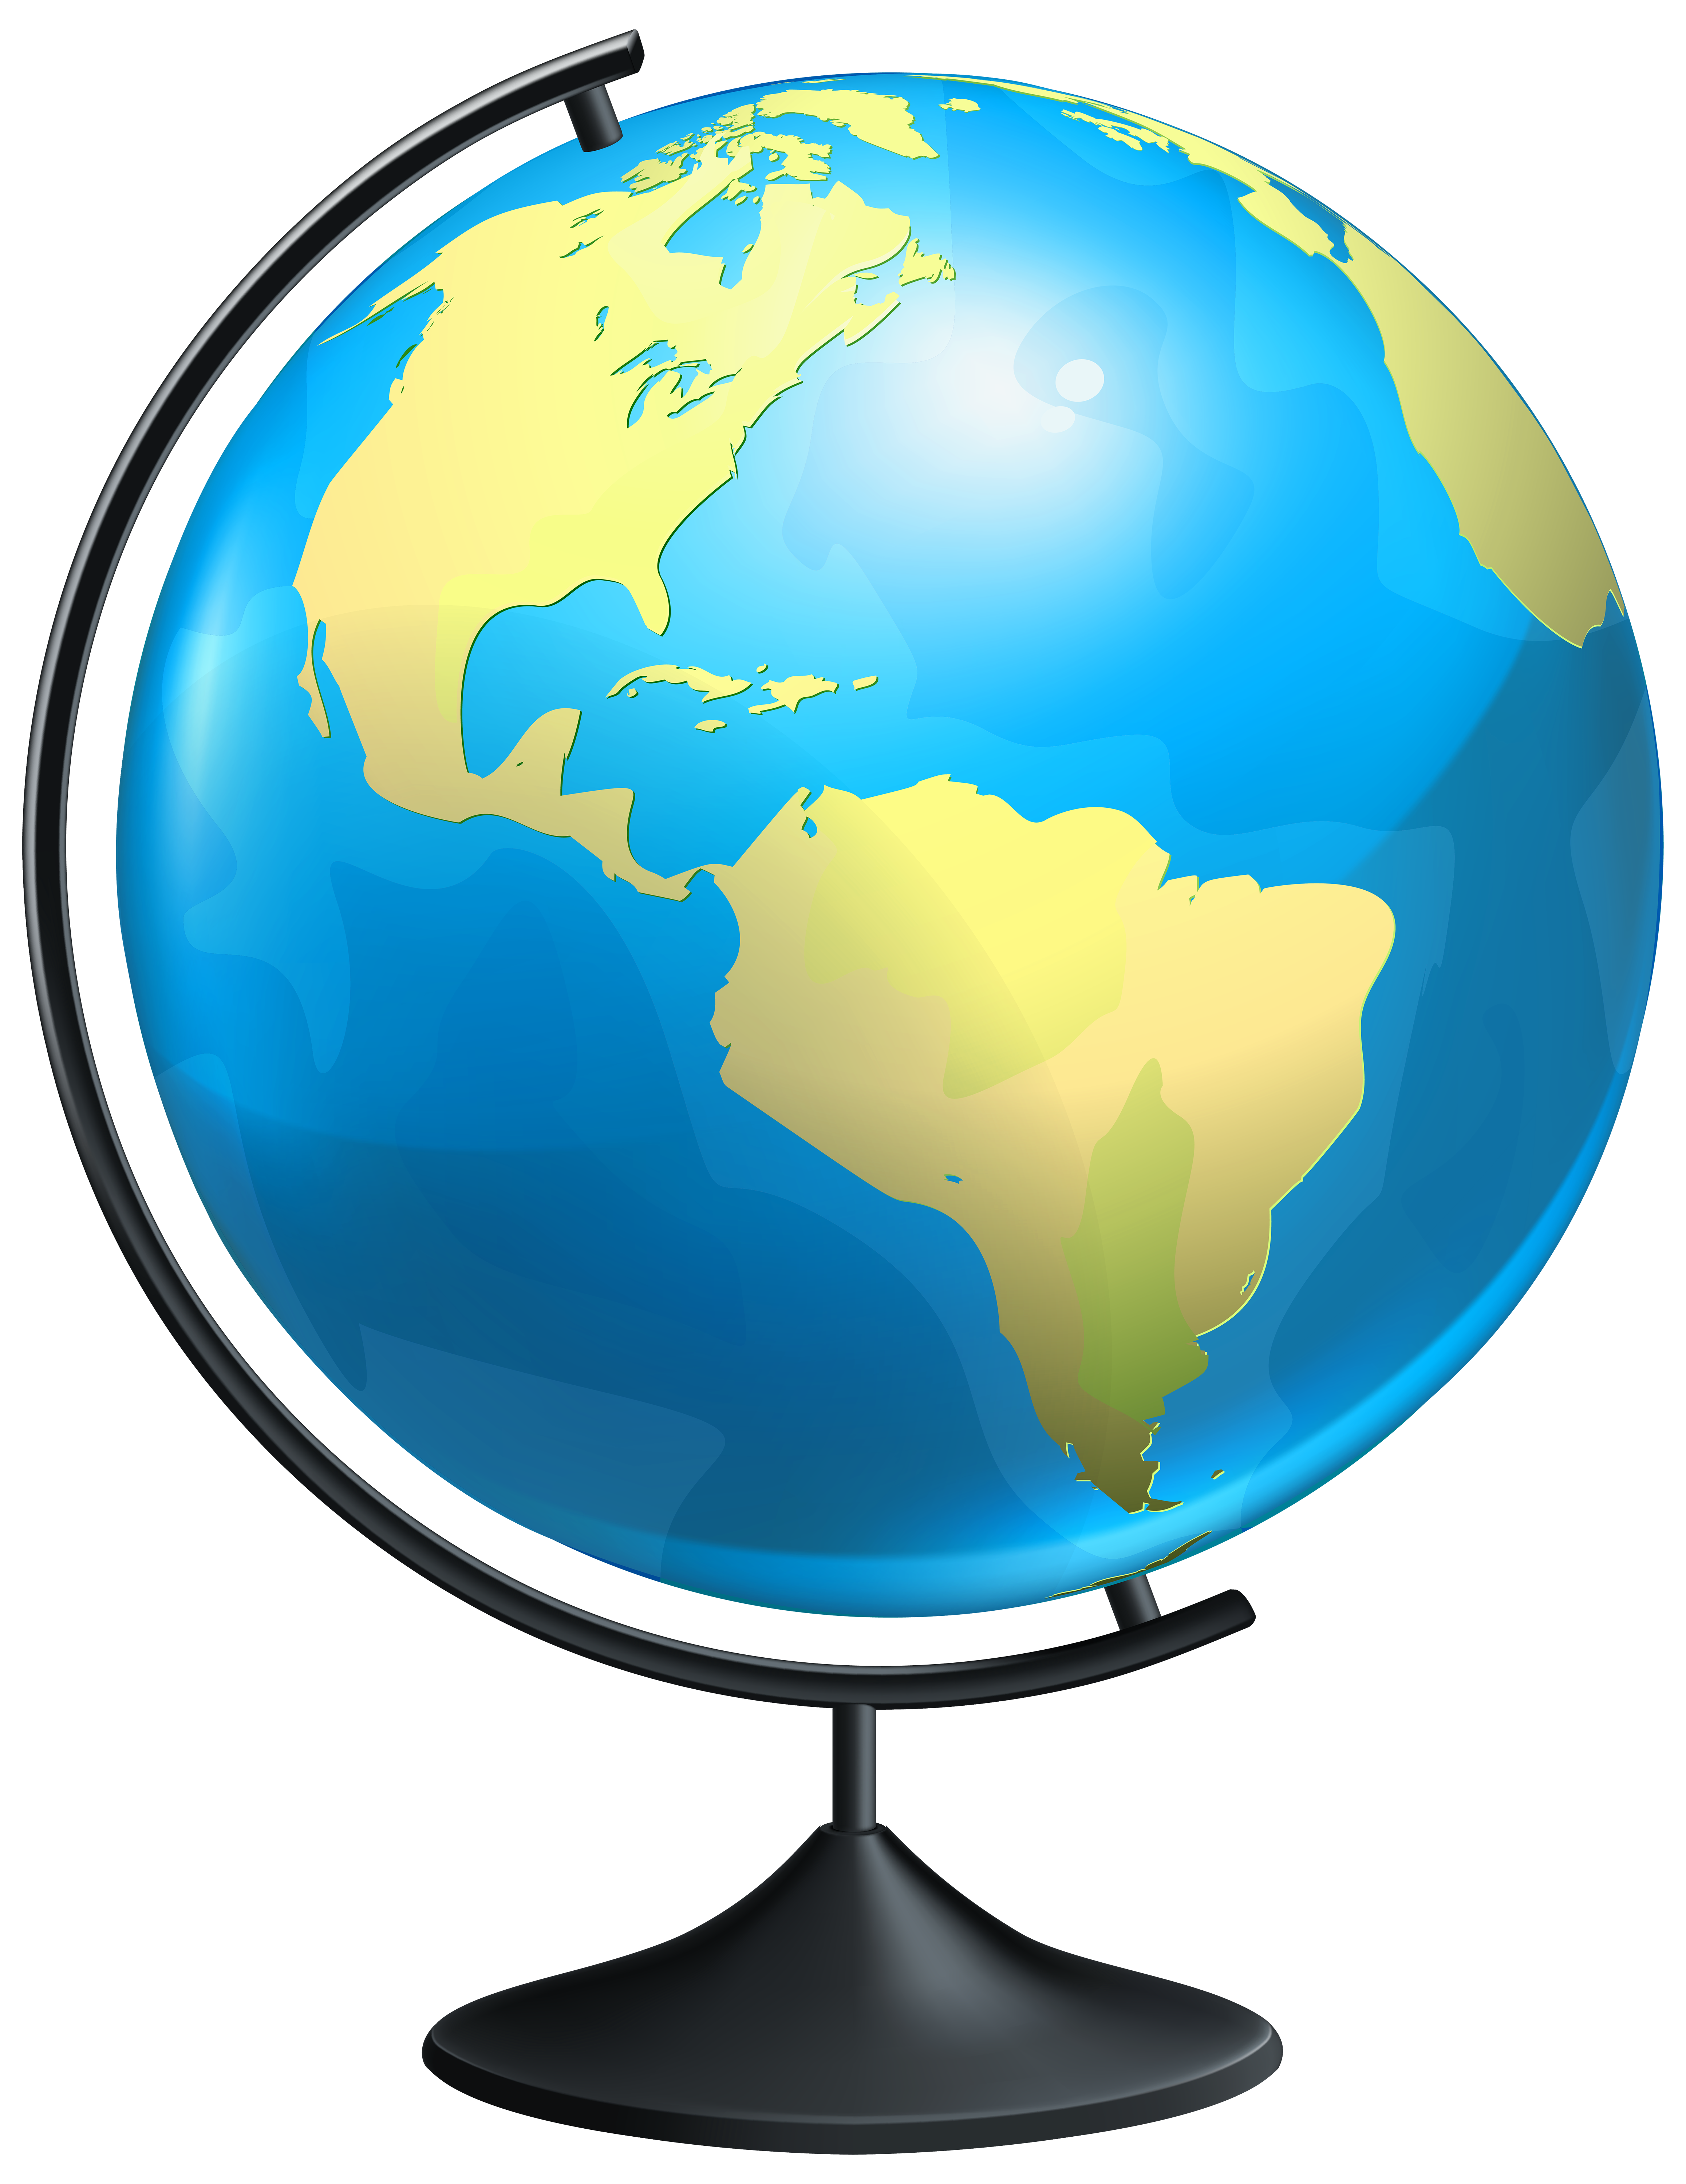 4631x6000 Globe Clipart, Suggestions For Globe Clipart, Download Globe Clipart